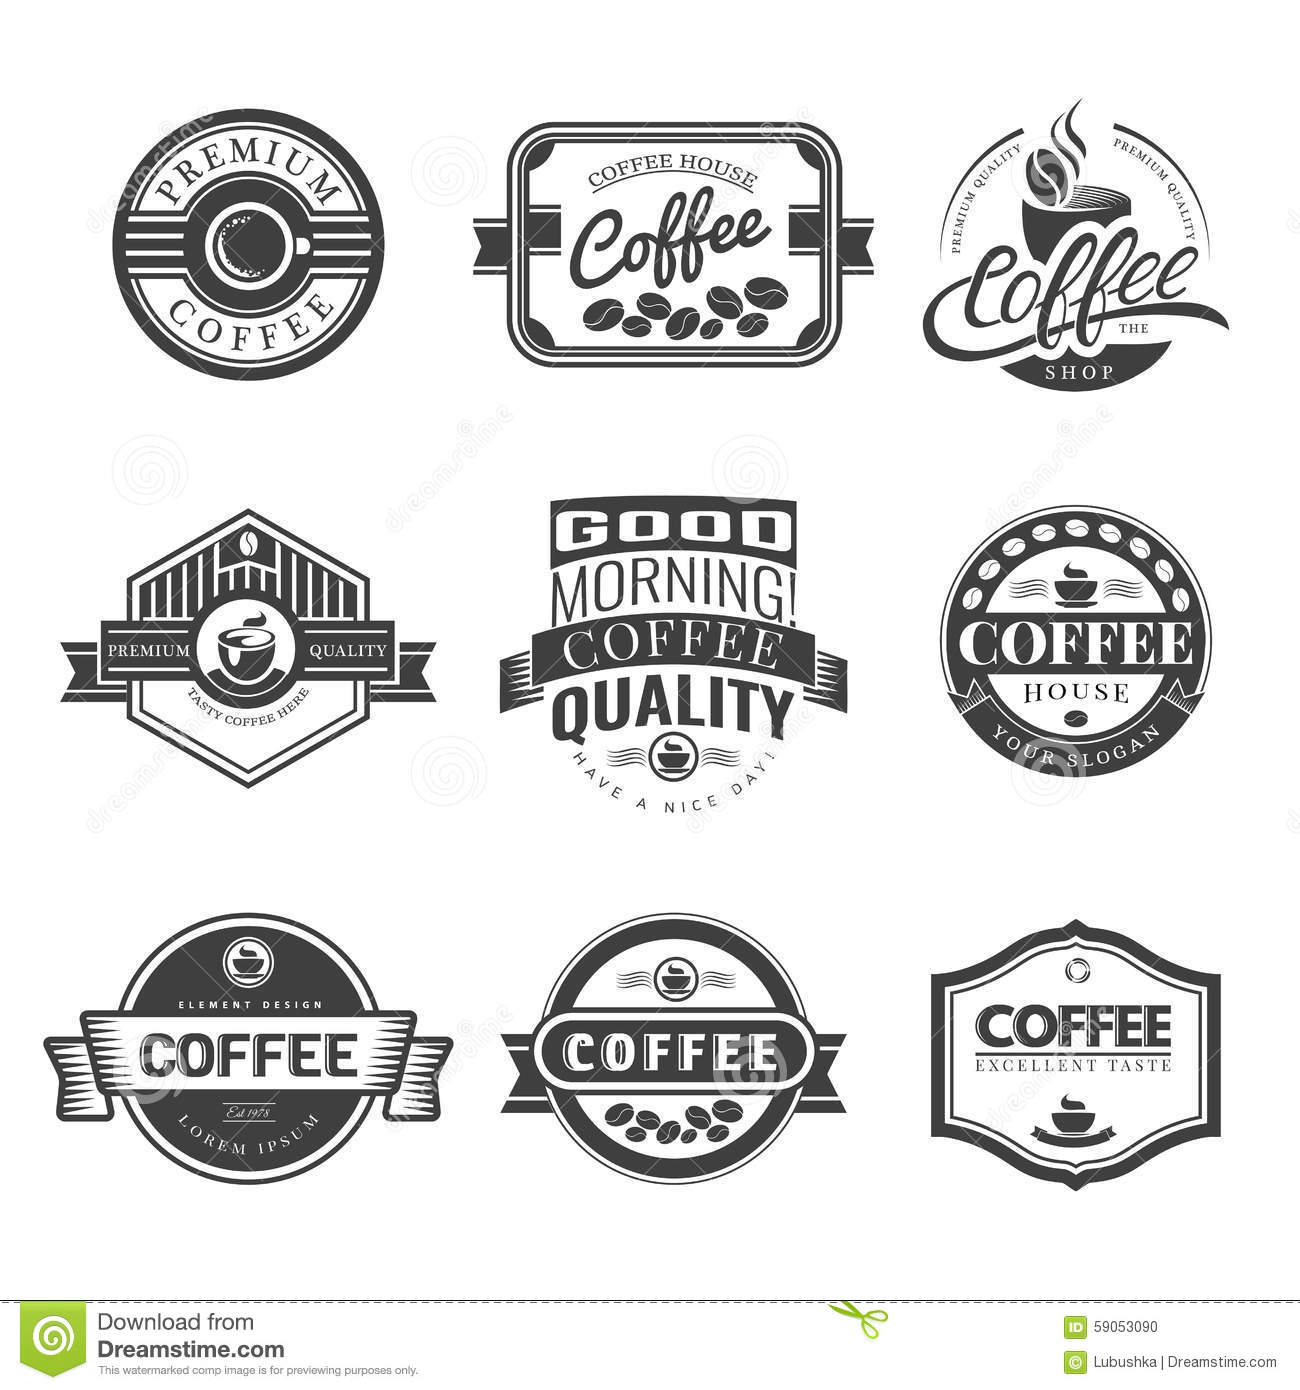 coffee vintage logo stock vector illustration of lettering 59053090